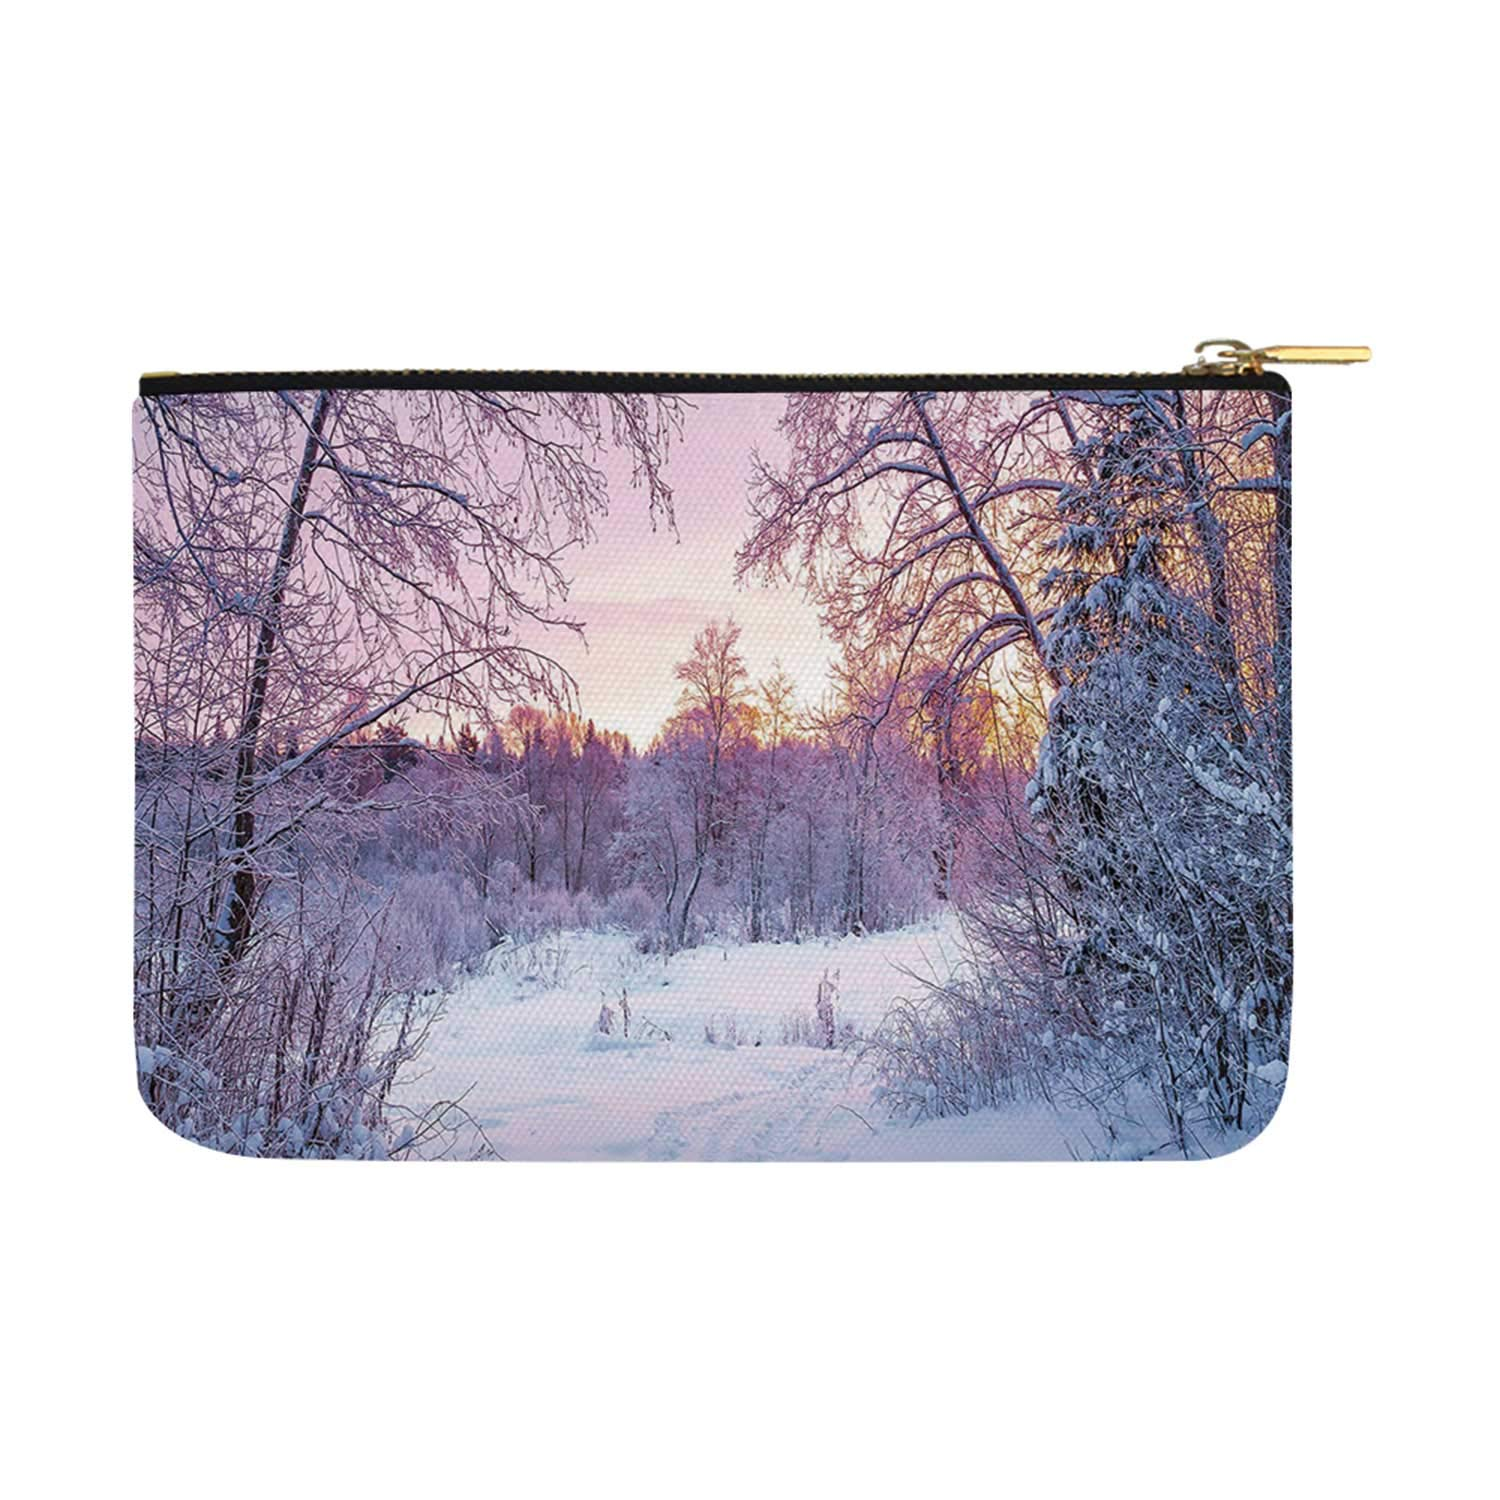 Quote Fashion womens canvas coin purse,For shopping